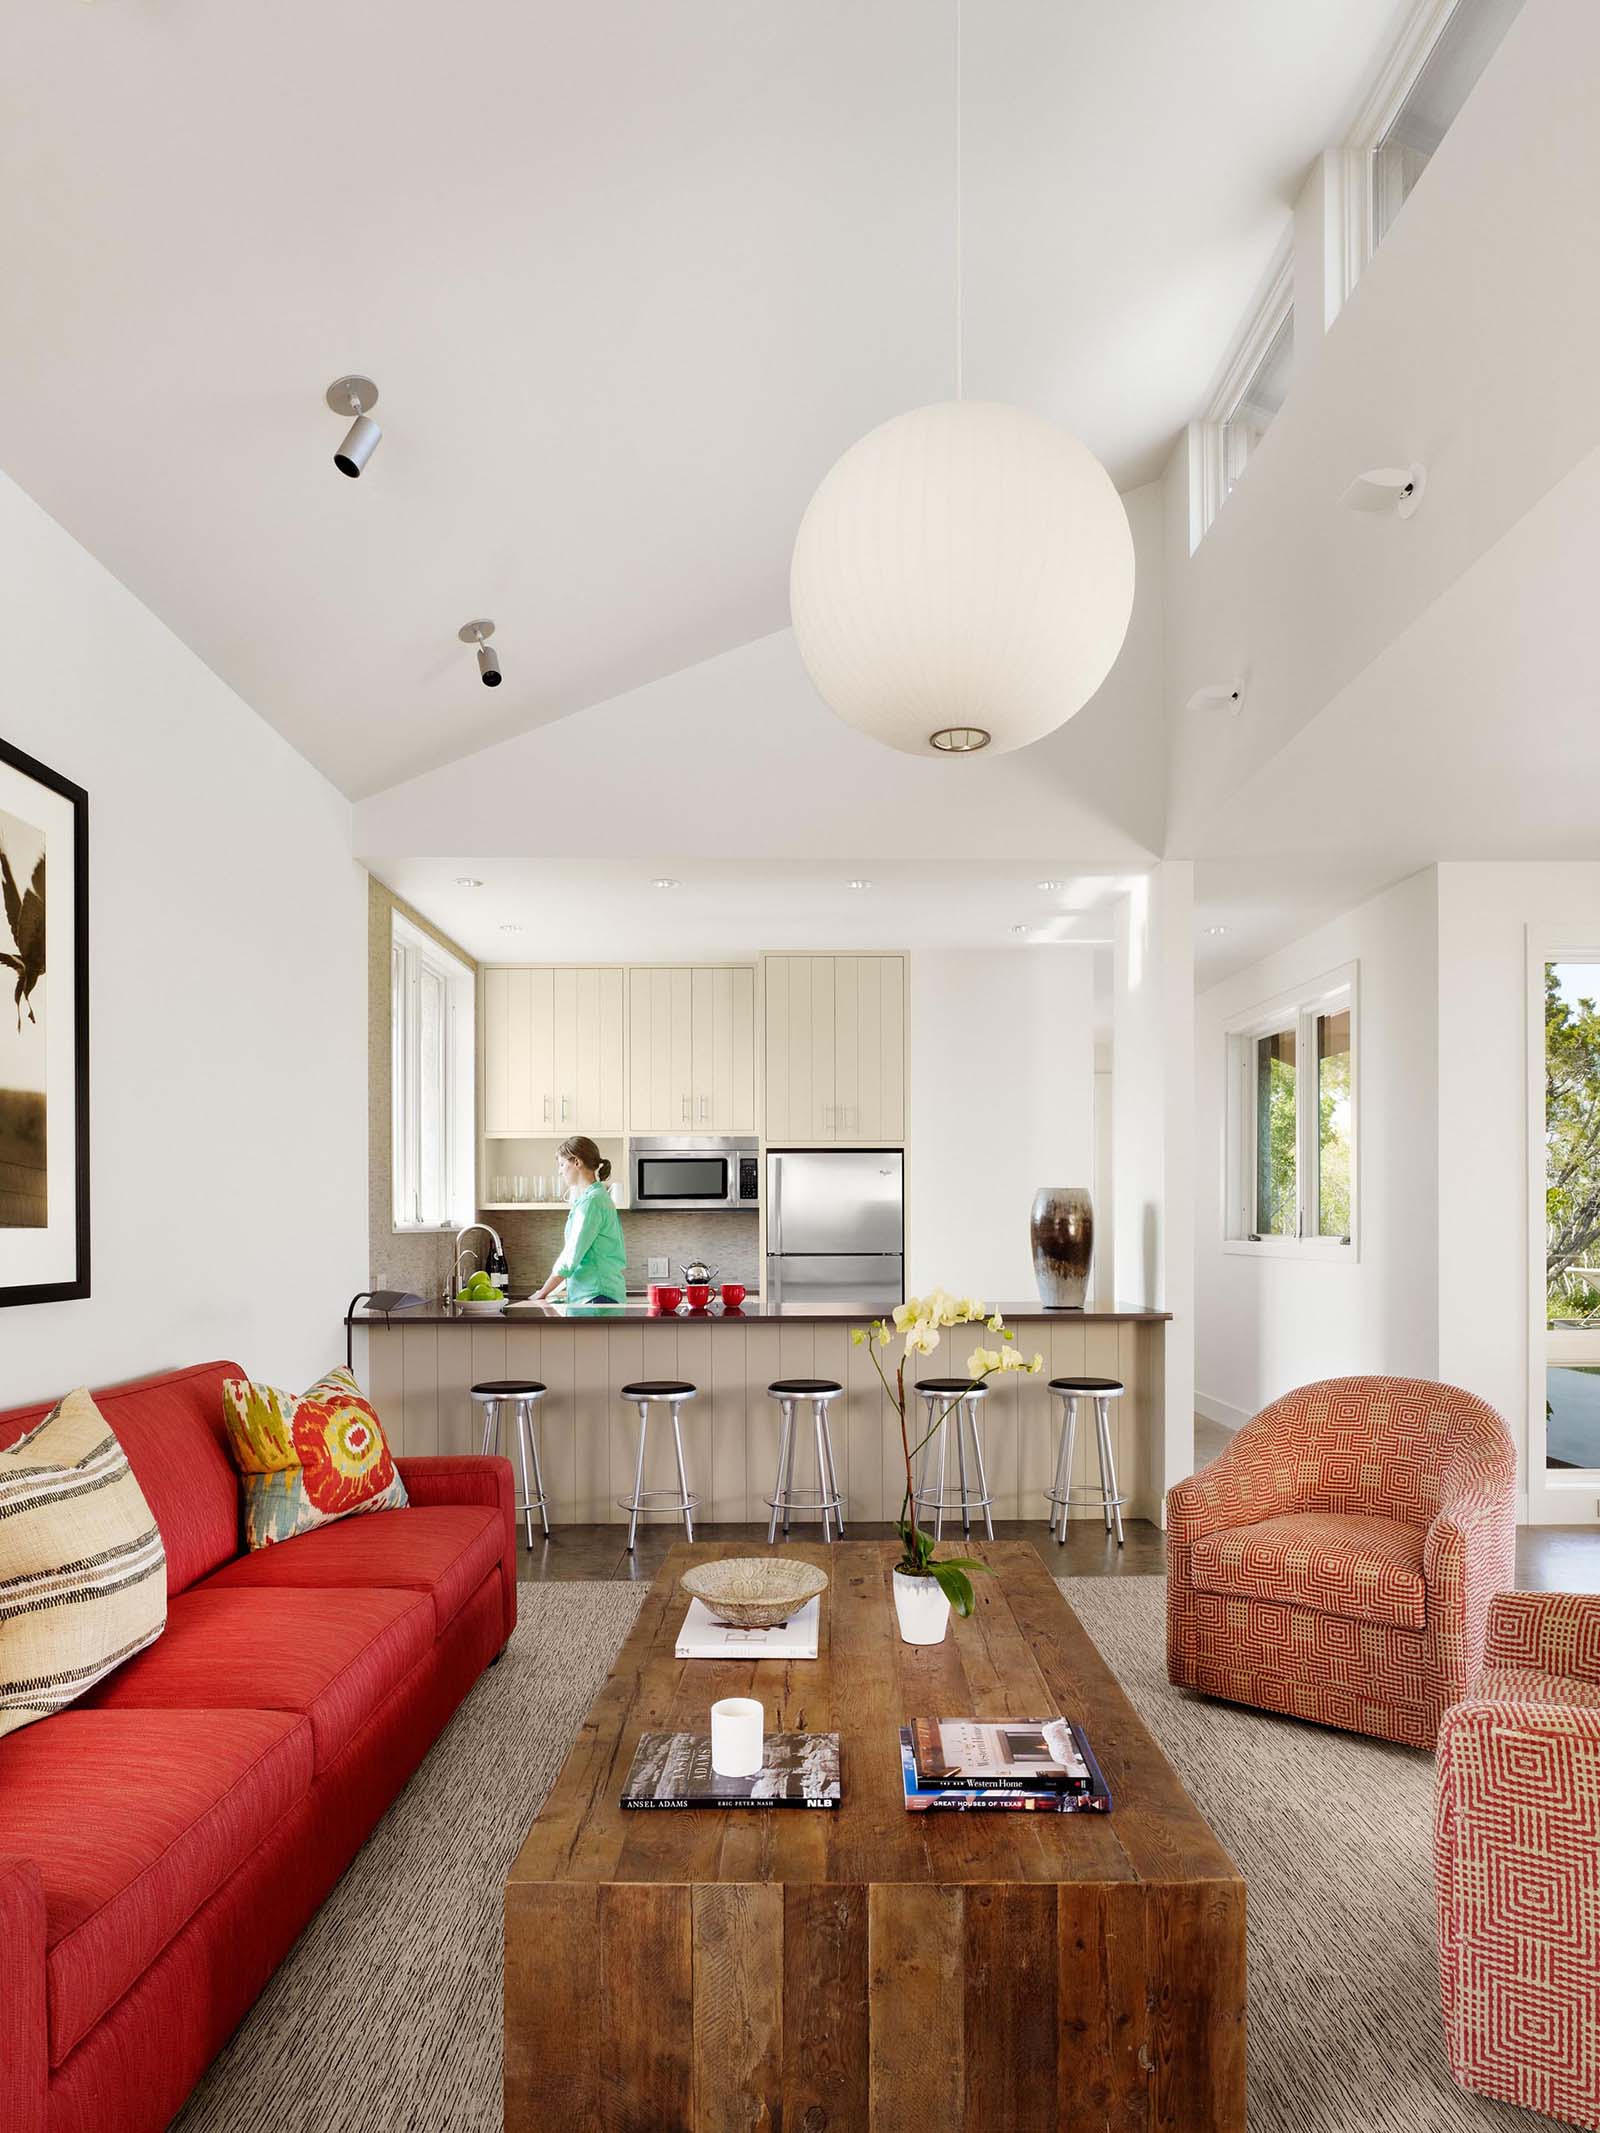 A contemporary guest house with open plan living room and kitchen.